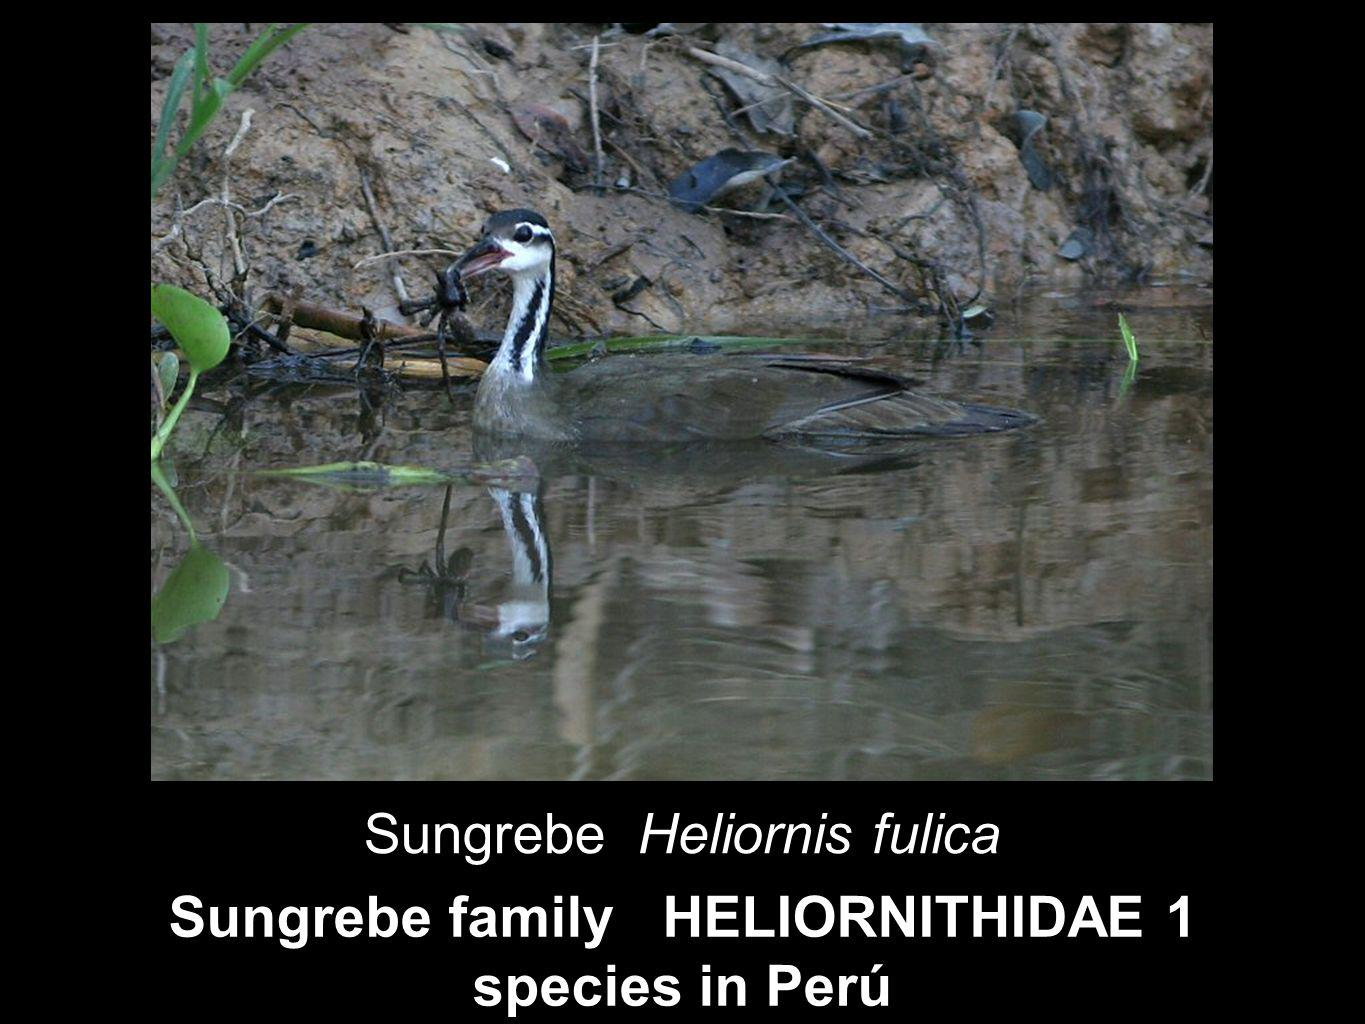 Sungrebe family HELIORNITHIDAE 1 species in Perú Sungrebe Heliornis fulica